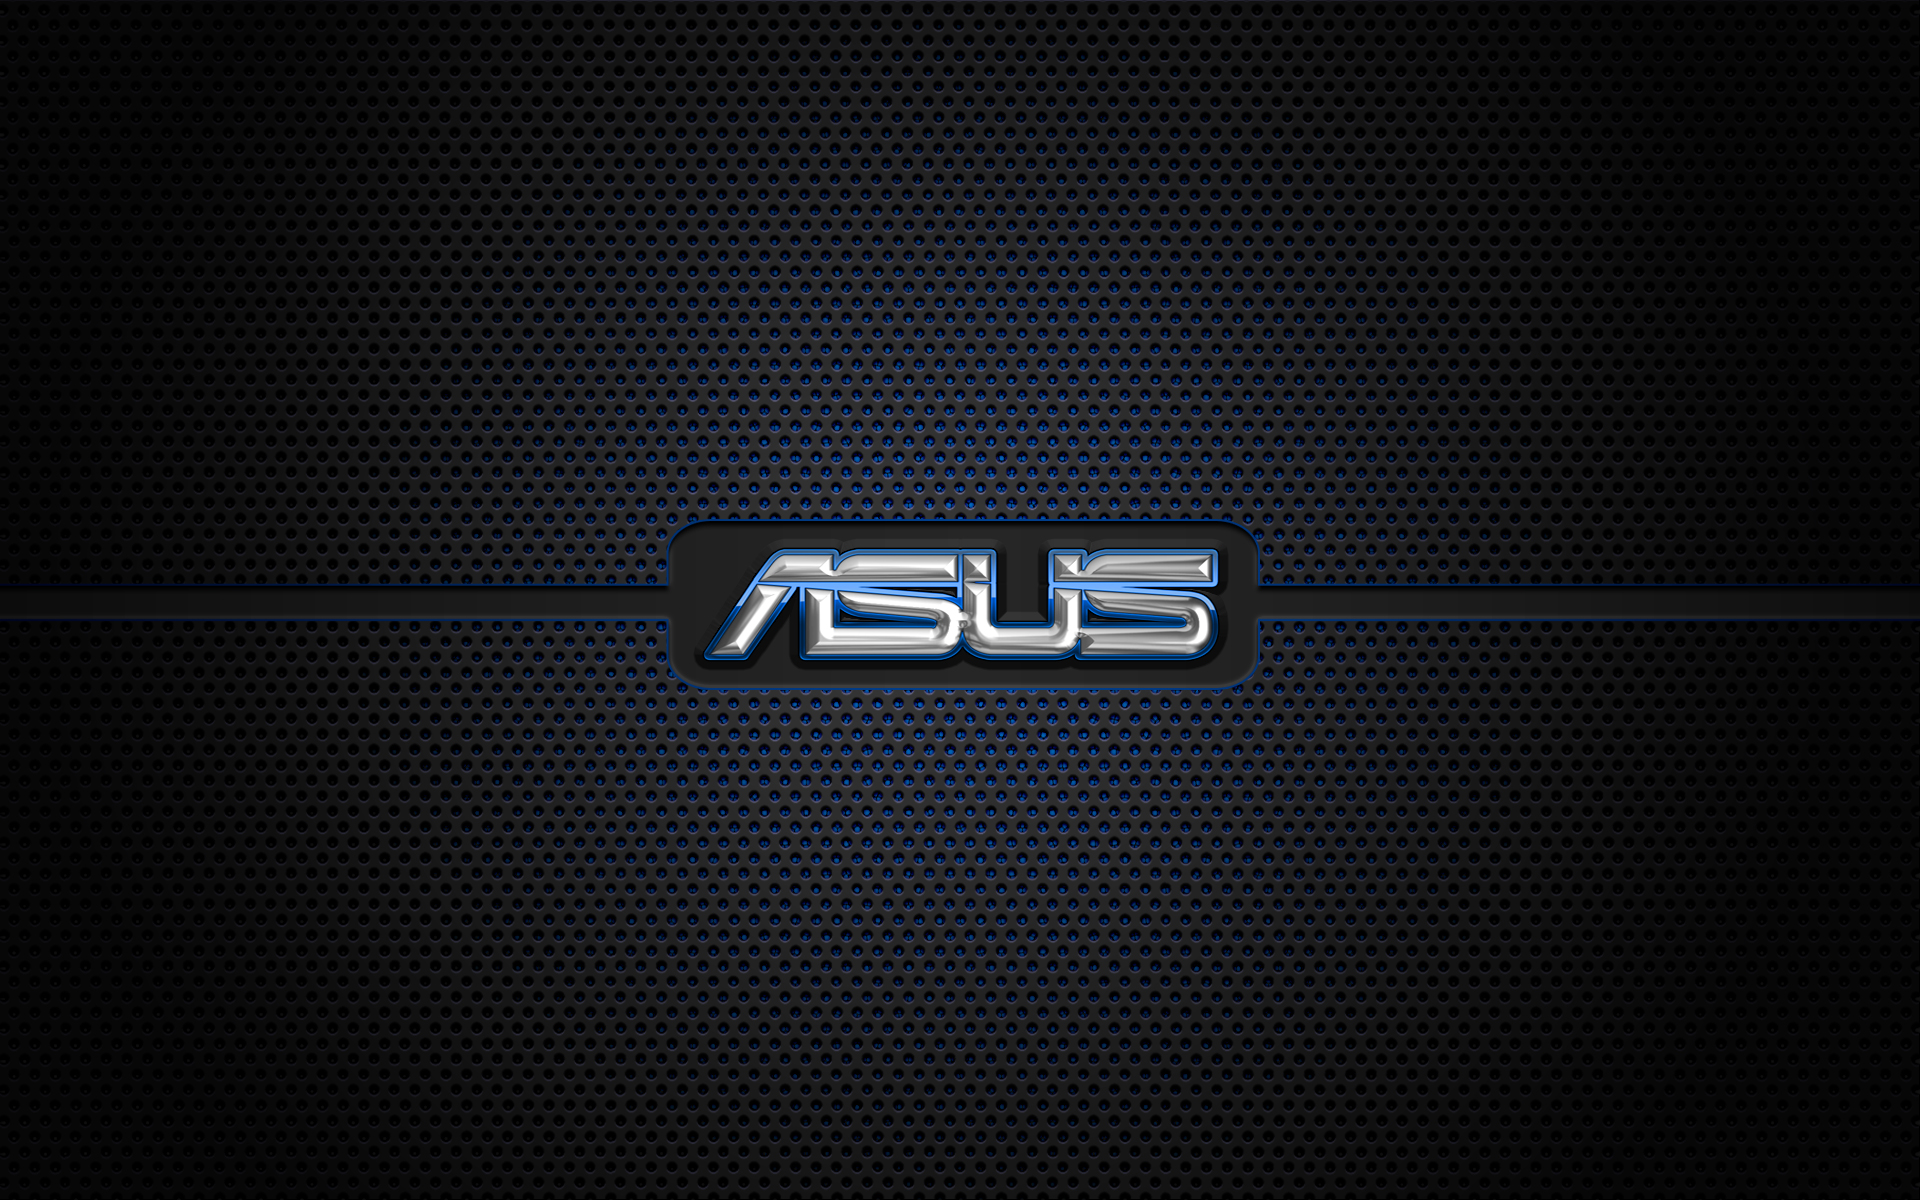 asus_10_by_mullet-d7xc3zw.jpg